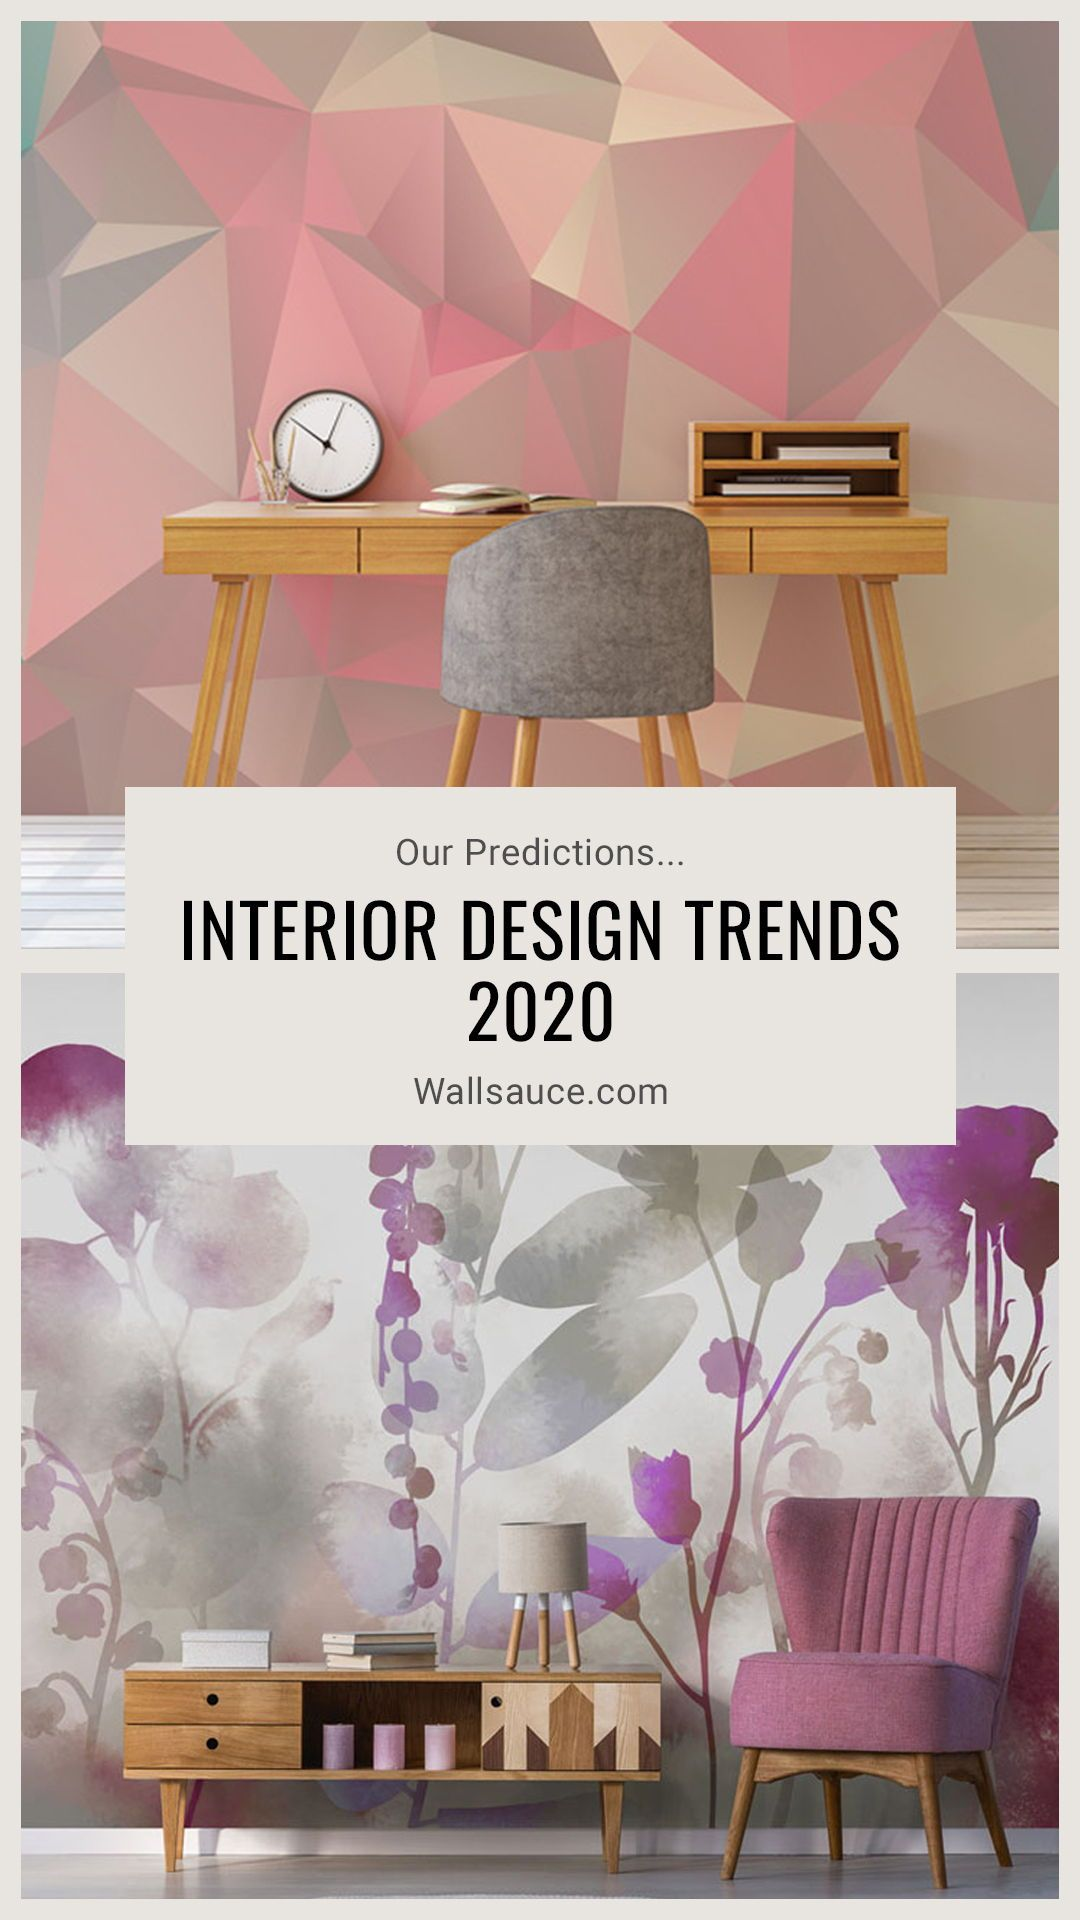 Interior Design Trends 2020 Our Predictions Wallpaper Trends Design Trends Interior Wallpaper